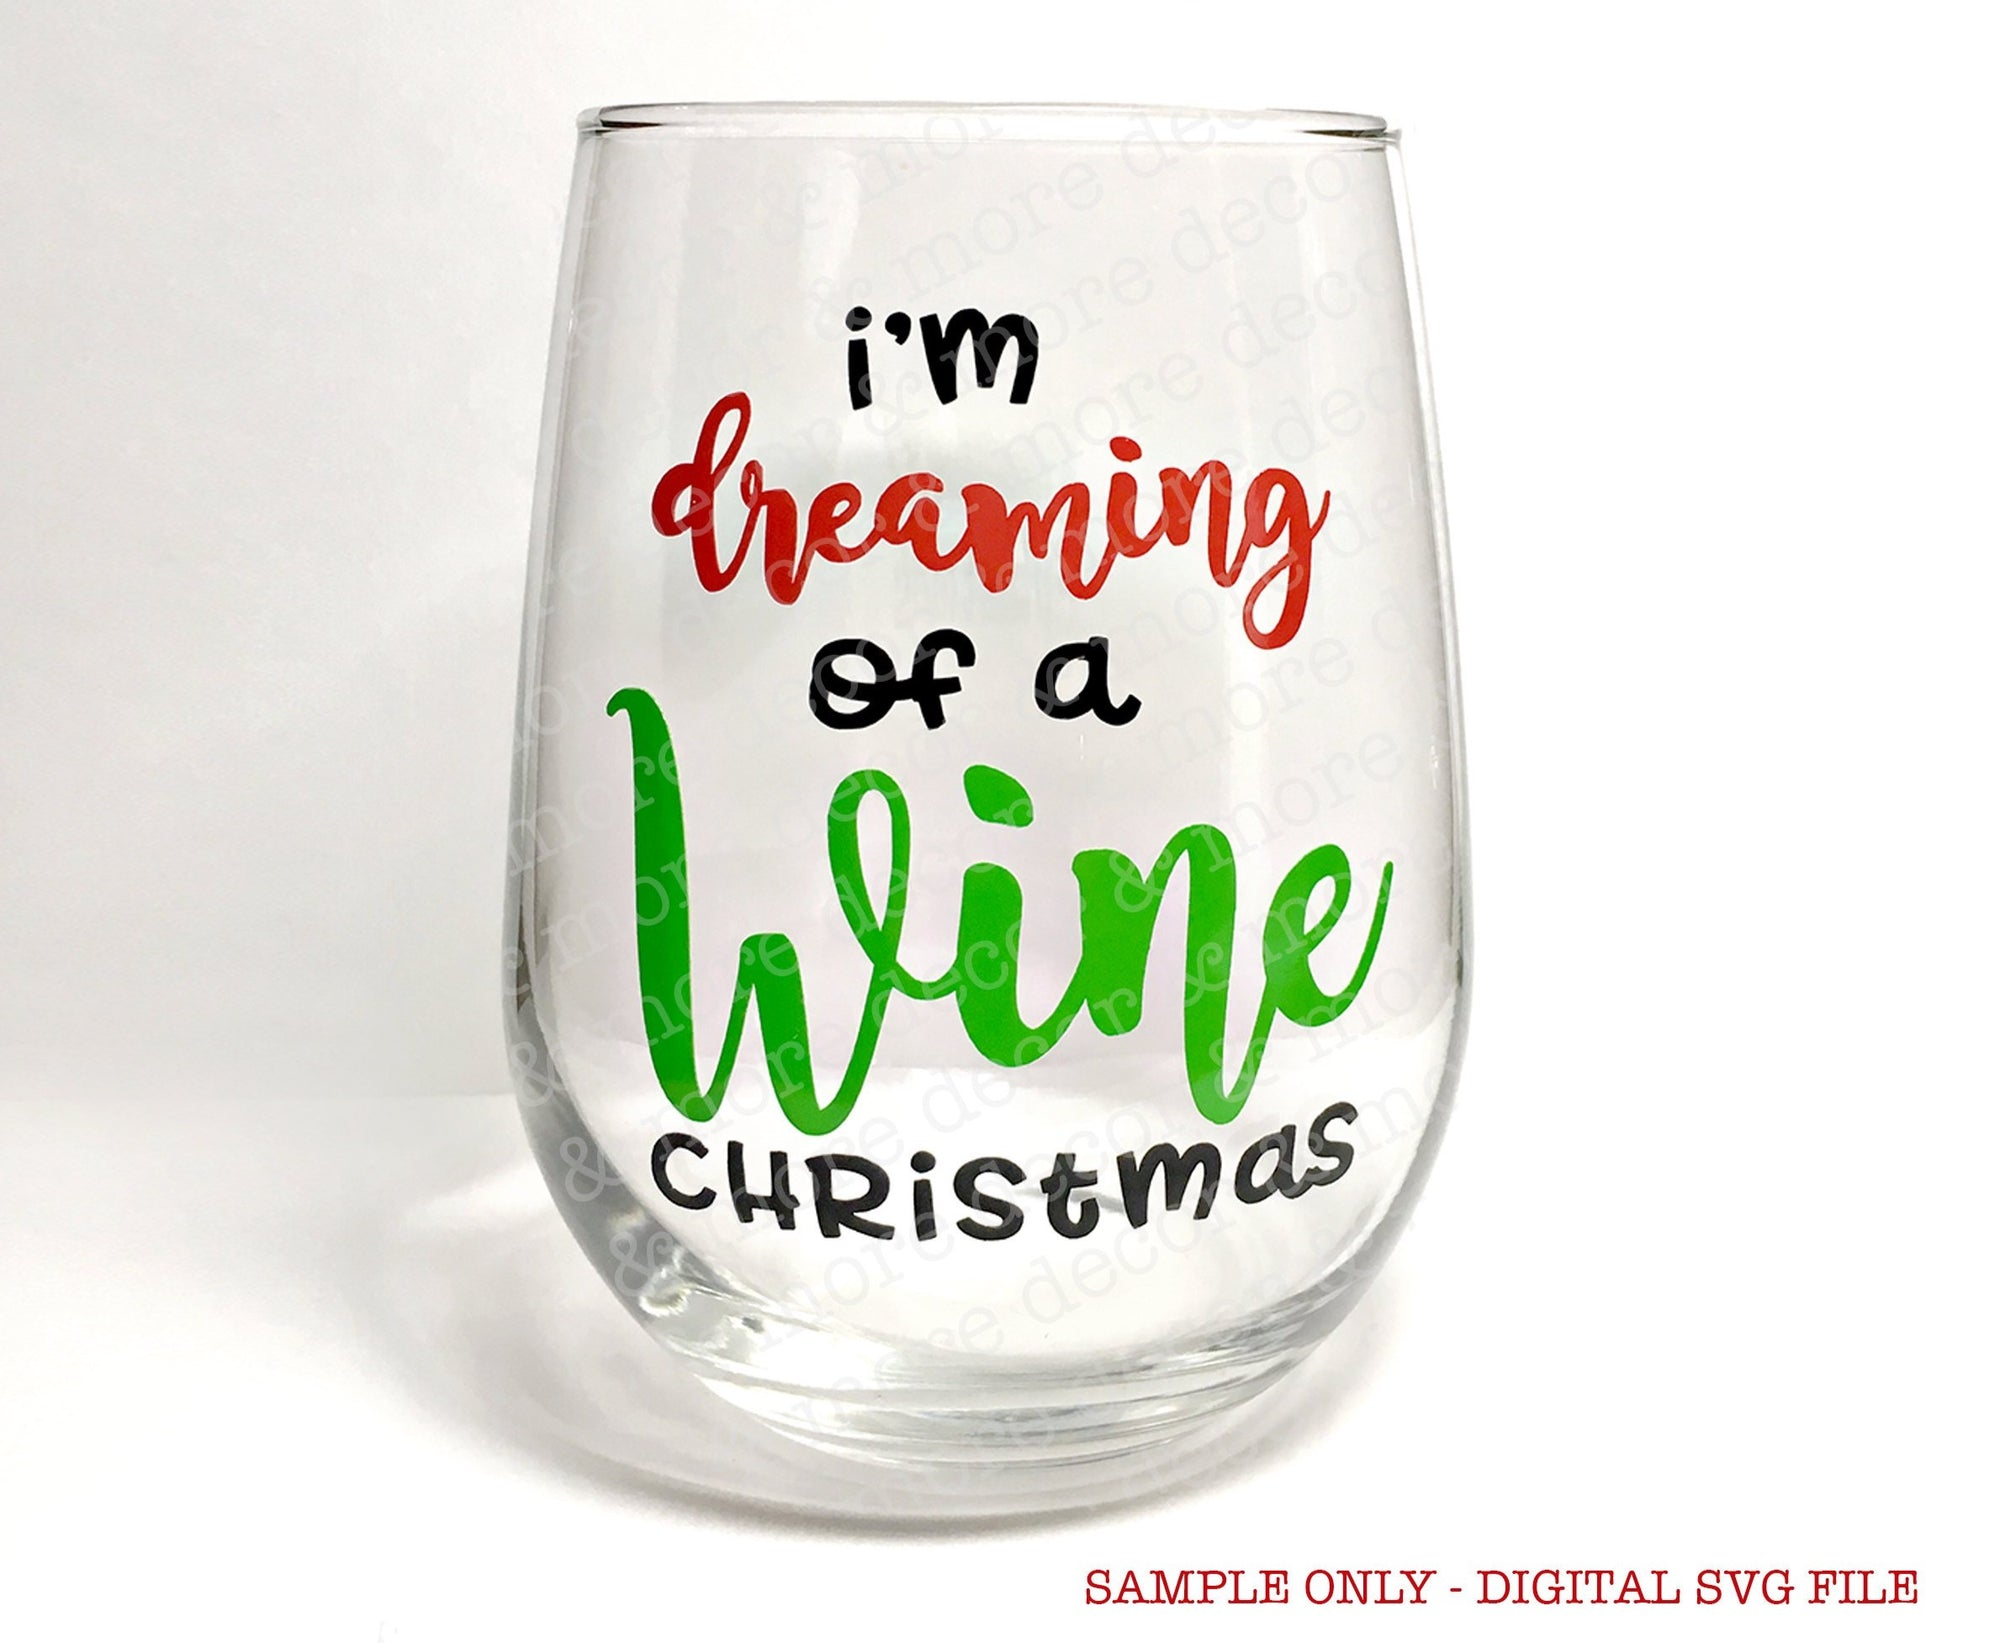 Christmas Wine Glass SVG File, Dreaming of a Wine Christmas SVG Cut File, SVG Files for Cricut, SVG File, Wine Glass Decal SVG, Christmas Svg File, Svg Cut Files, Commercial Use Svg